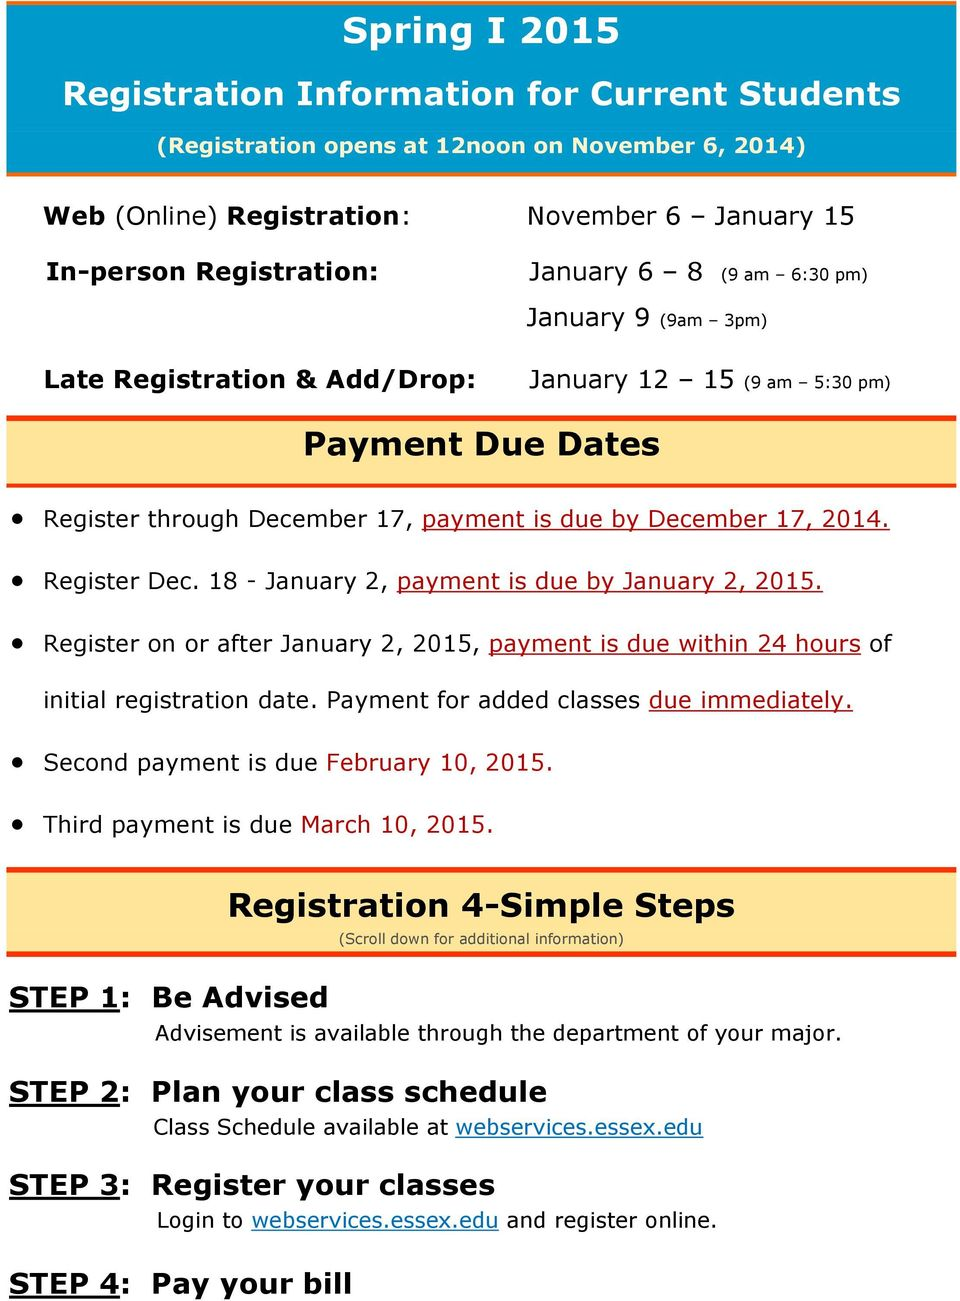 18 - January 2, payment is due by January 2, 2015. Register on or after January 2, 2015, payment is due within 24 hours of initial registration date. Payment for added classes due immediately.